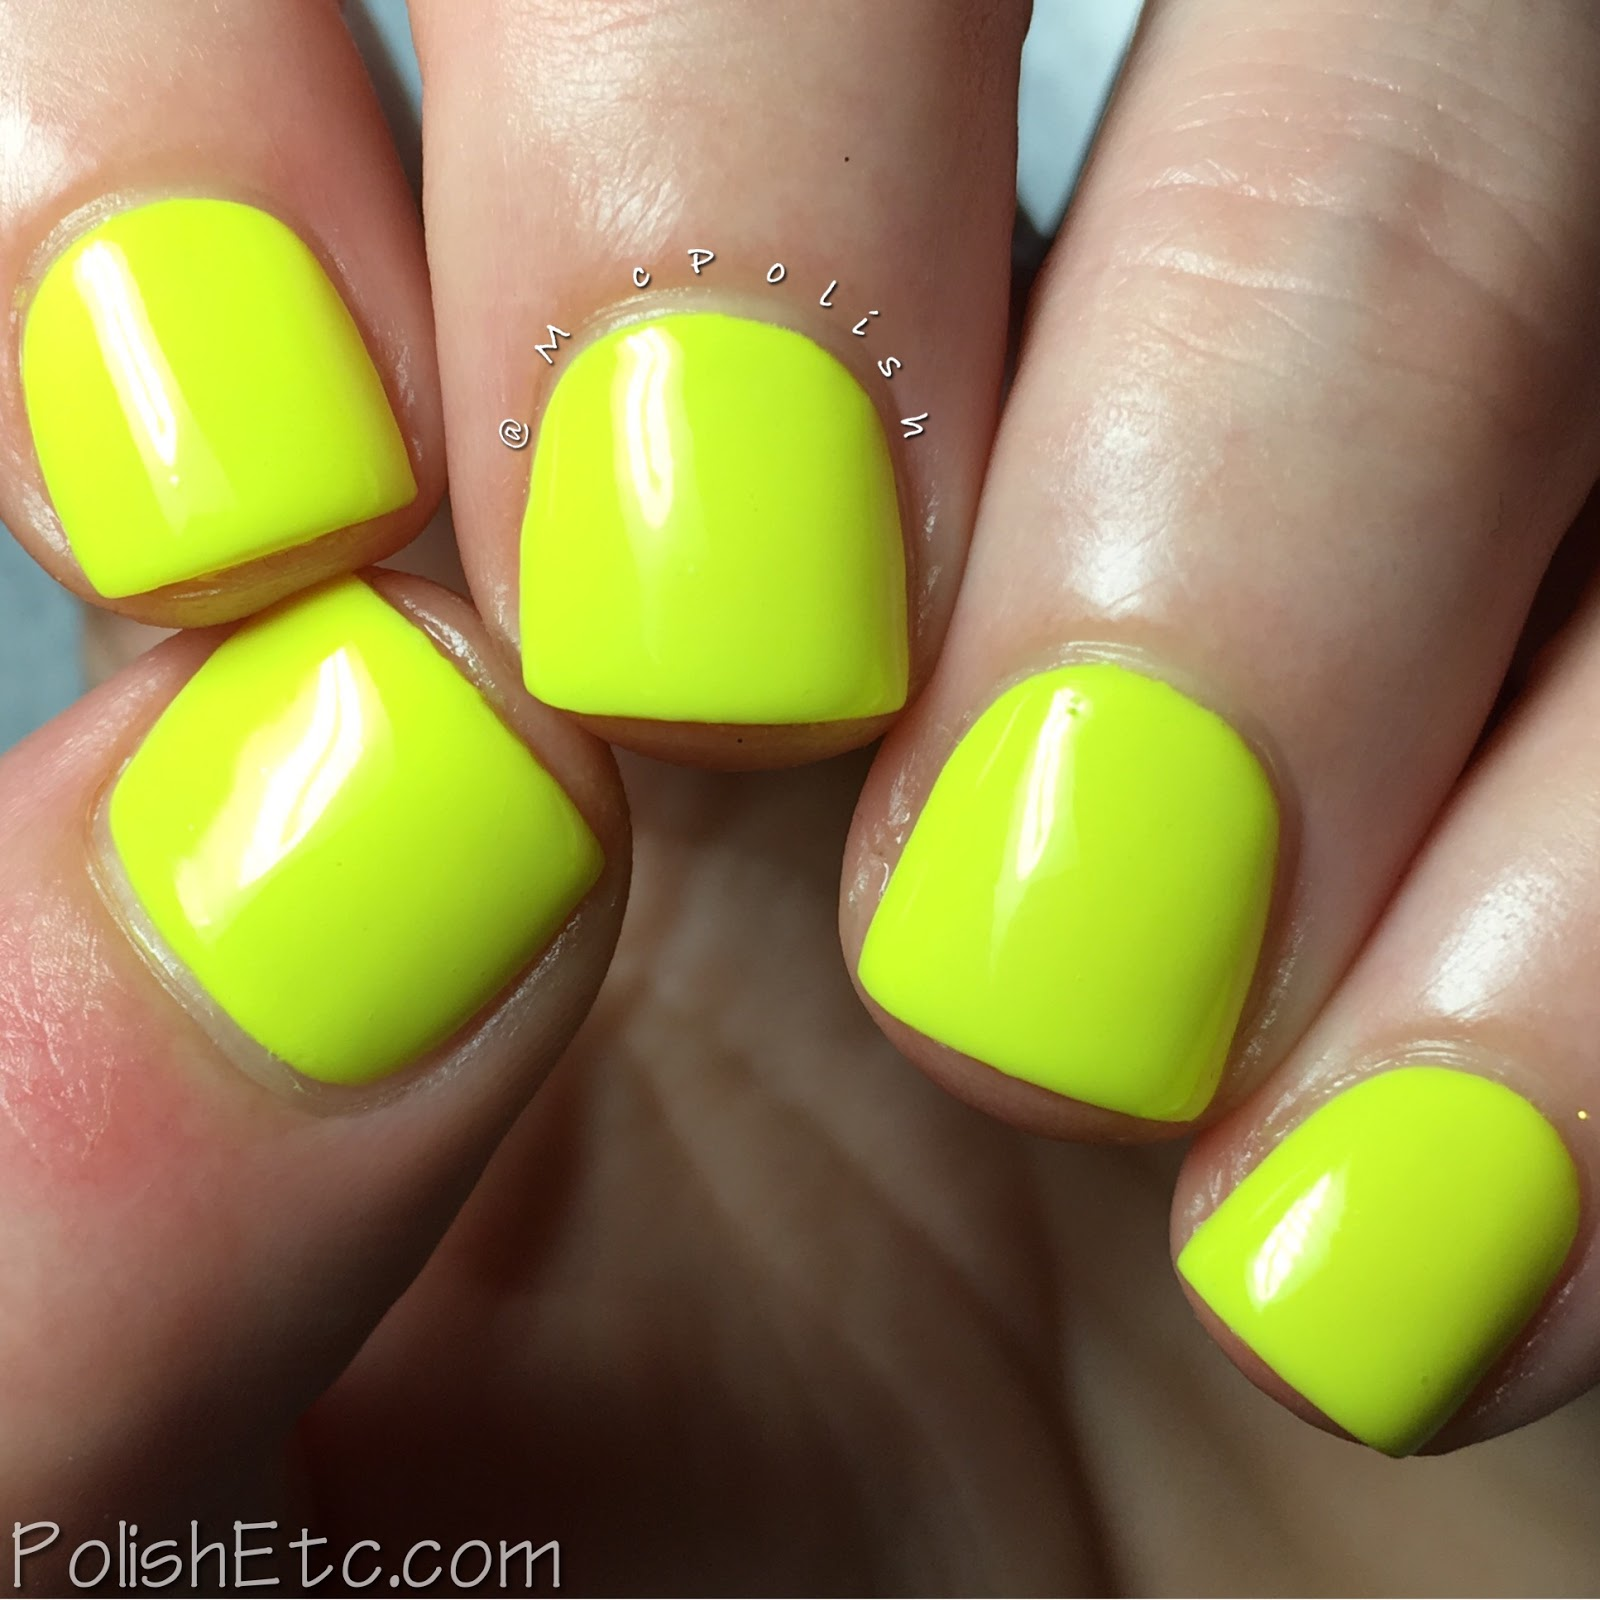 KBShimmer - All The Bright Moves Collection - McPolish - All The Bright Moves